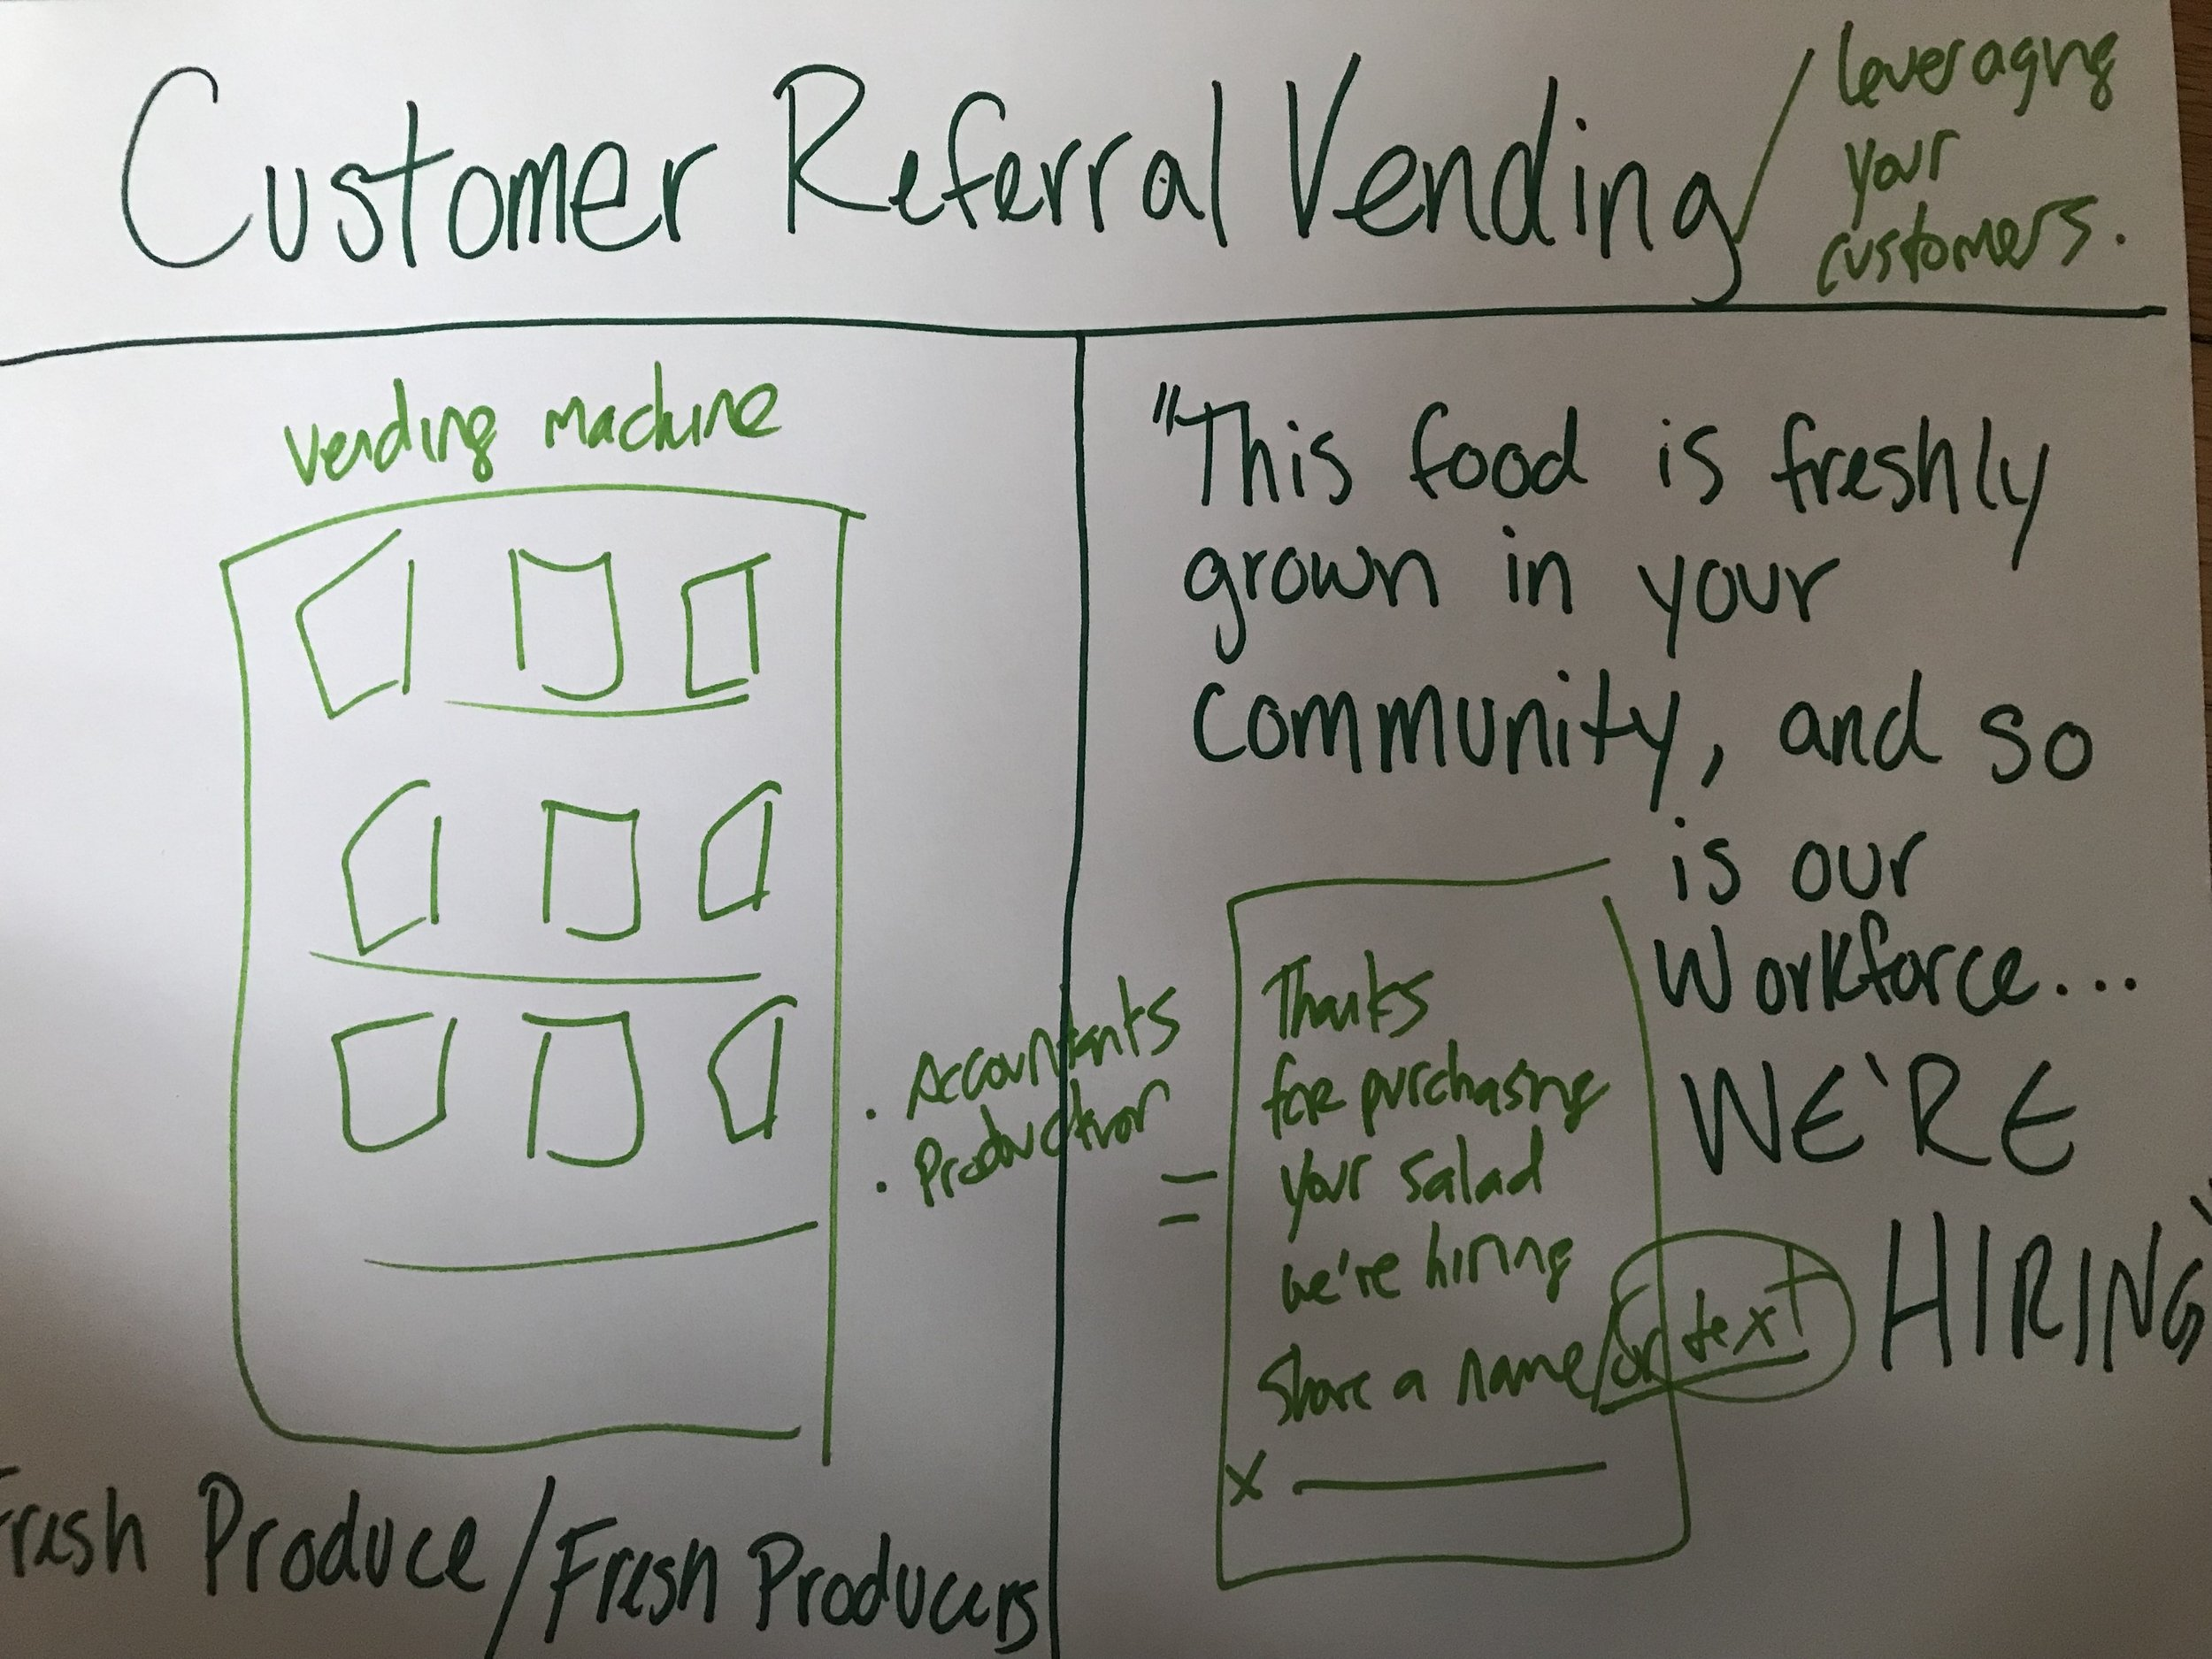 Customer Referral Vending